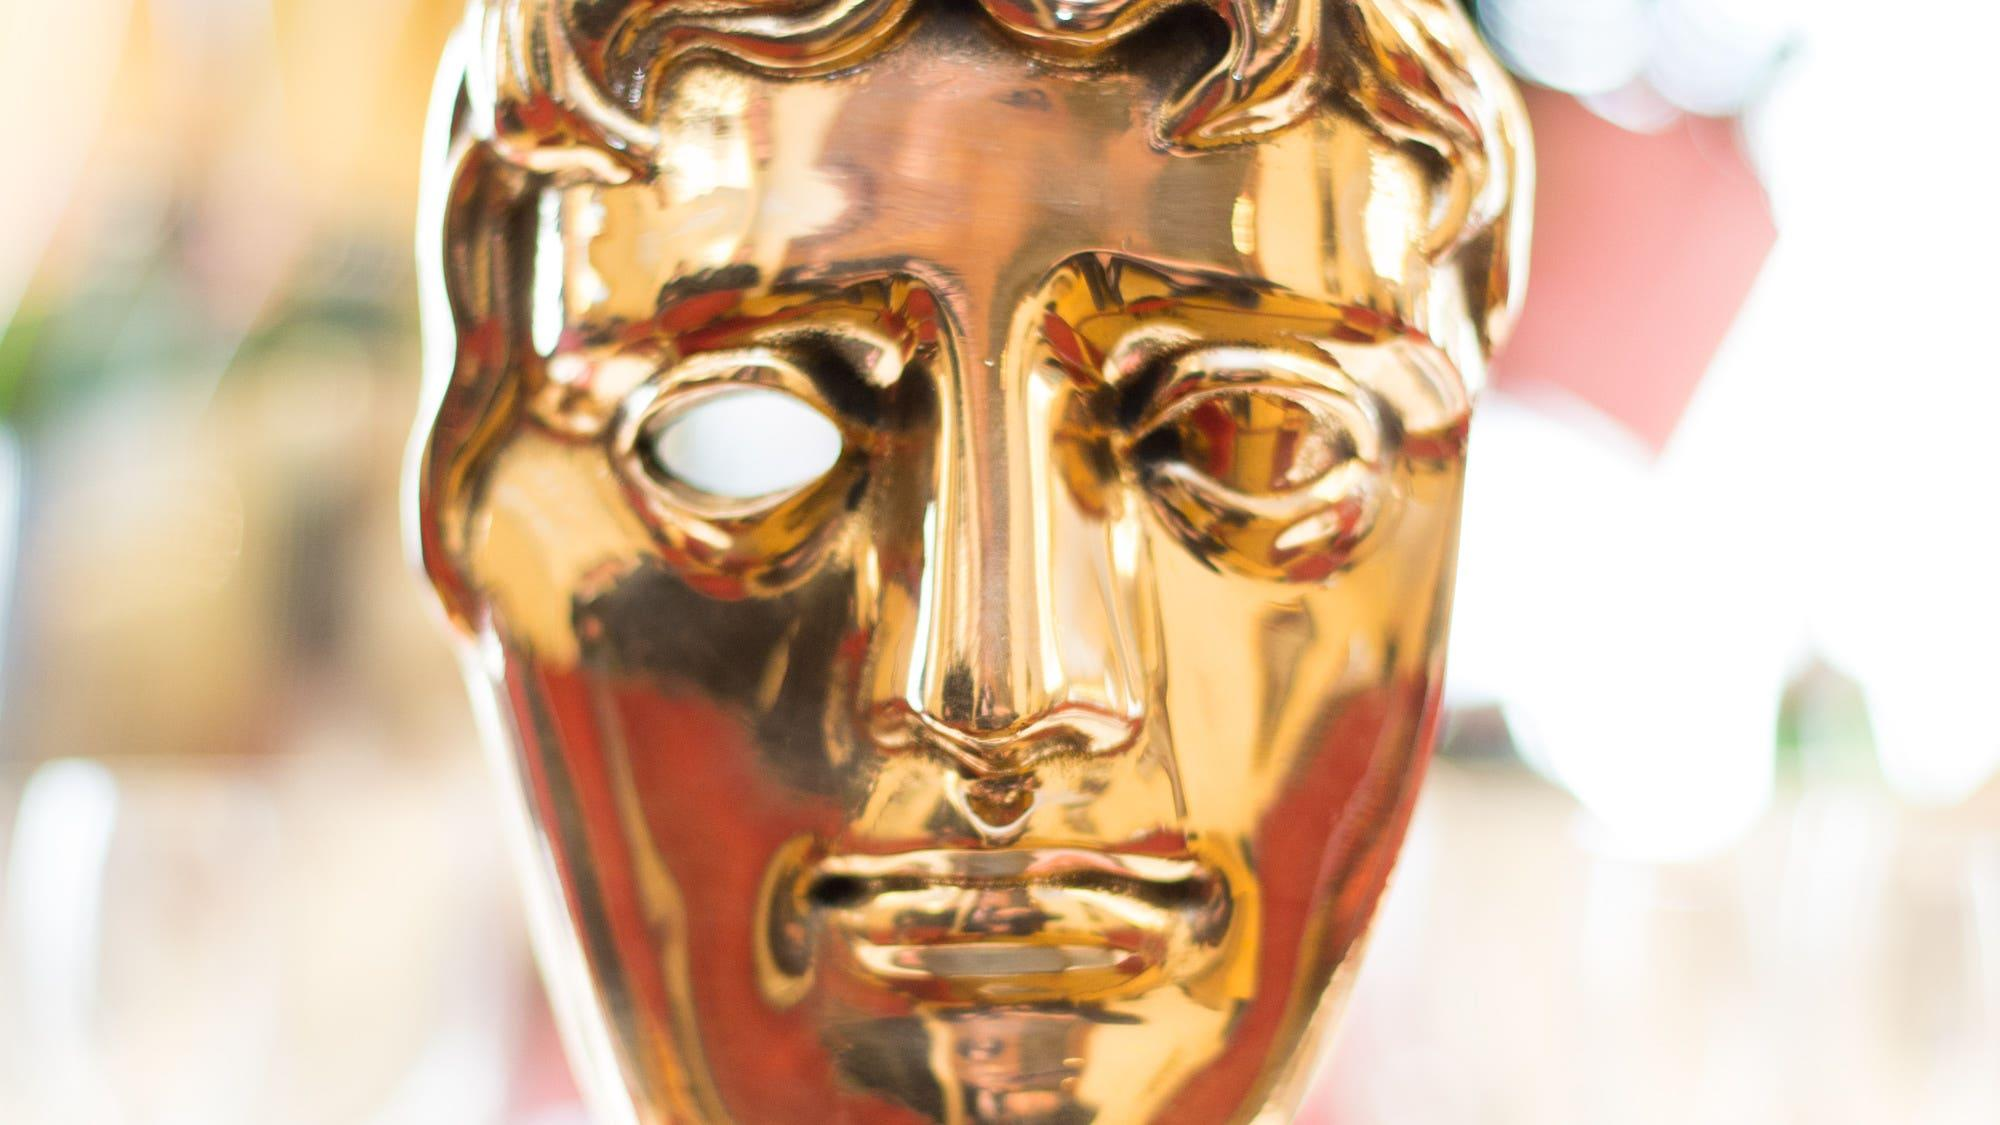 British stars Daniel Kaluuya and Vanessa Kirby among hopefuls at virtual Baftas